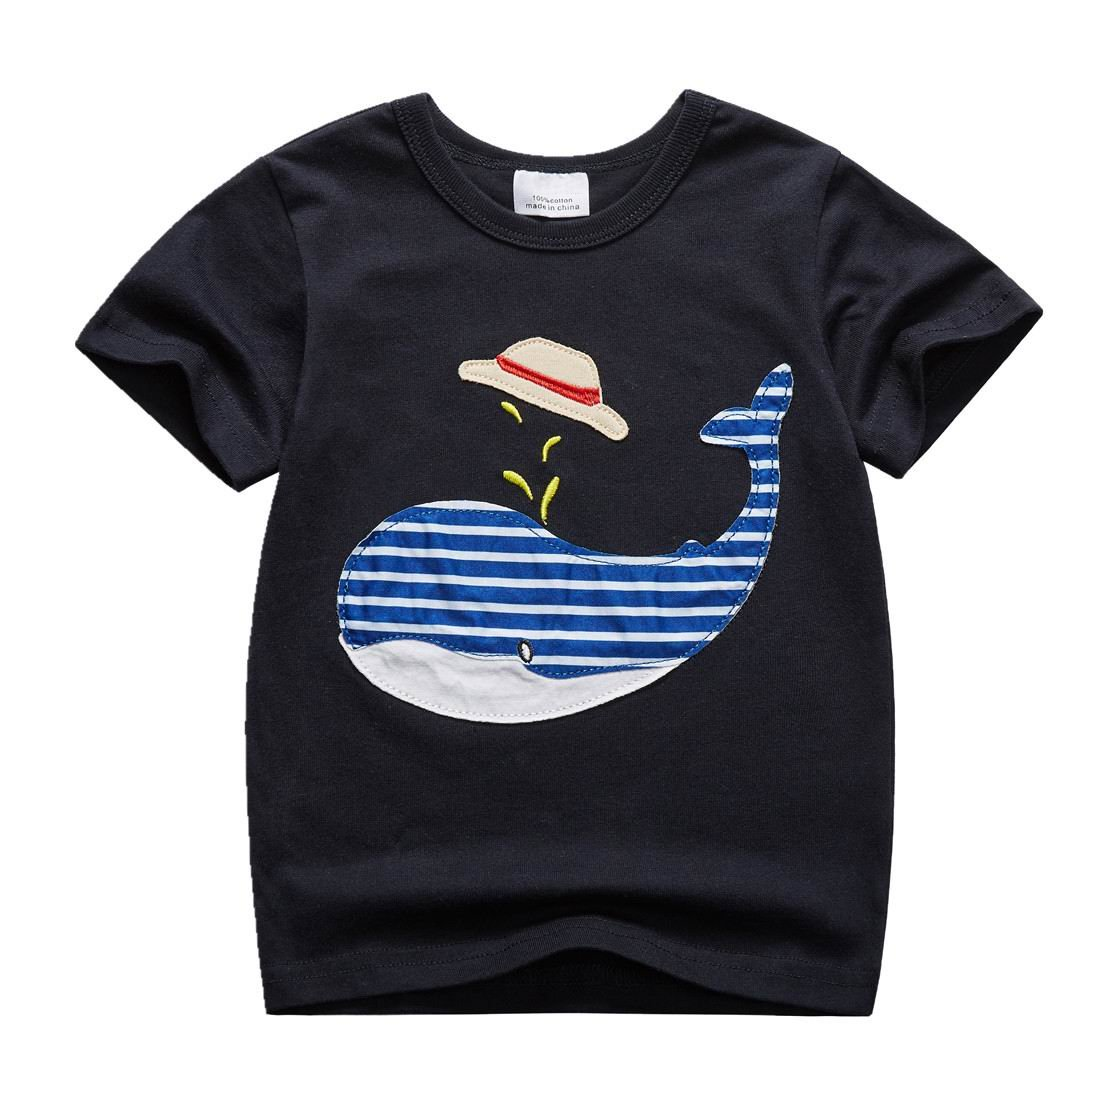 Sooxiwood Little Boys T-Shirt Animal Summer Size 2T Navy-Black by Sooxiwood (Image #1)